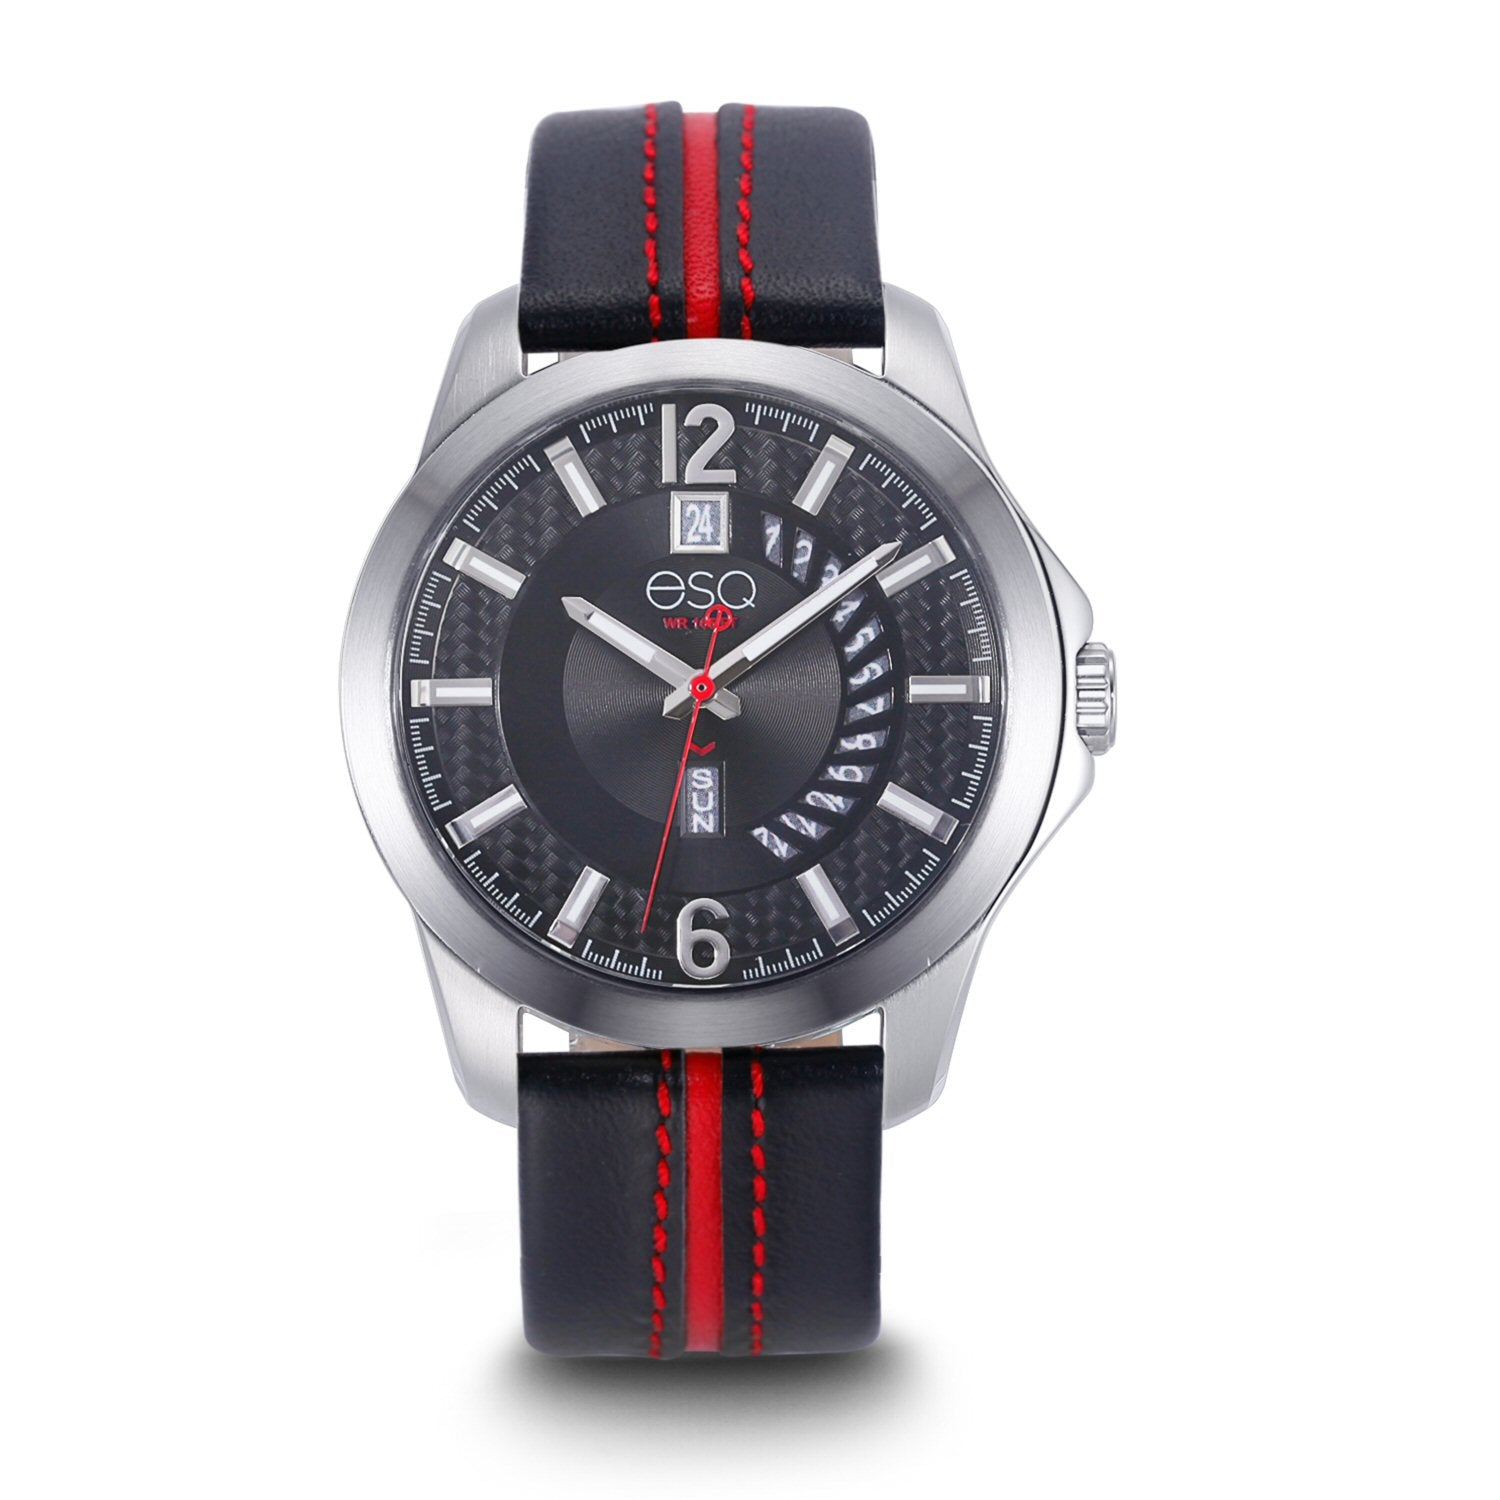 Men's ESQ0090 Stainless Steel 3-Hand Watch with Textured Black Dial, Day/Date Windows and Genuine Leather Strap